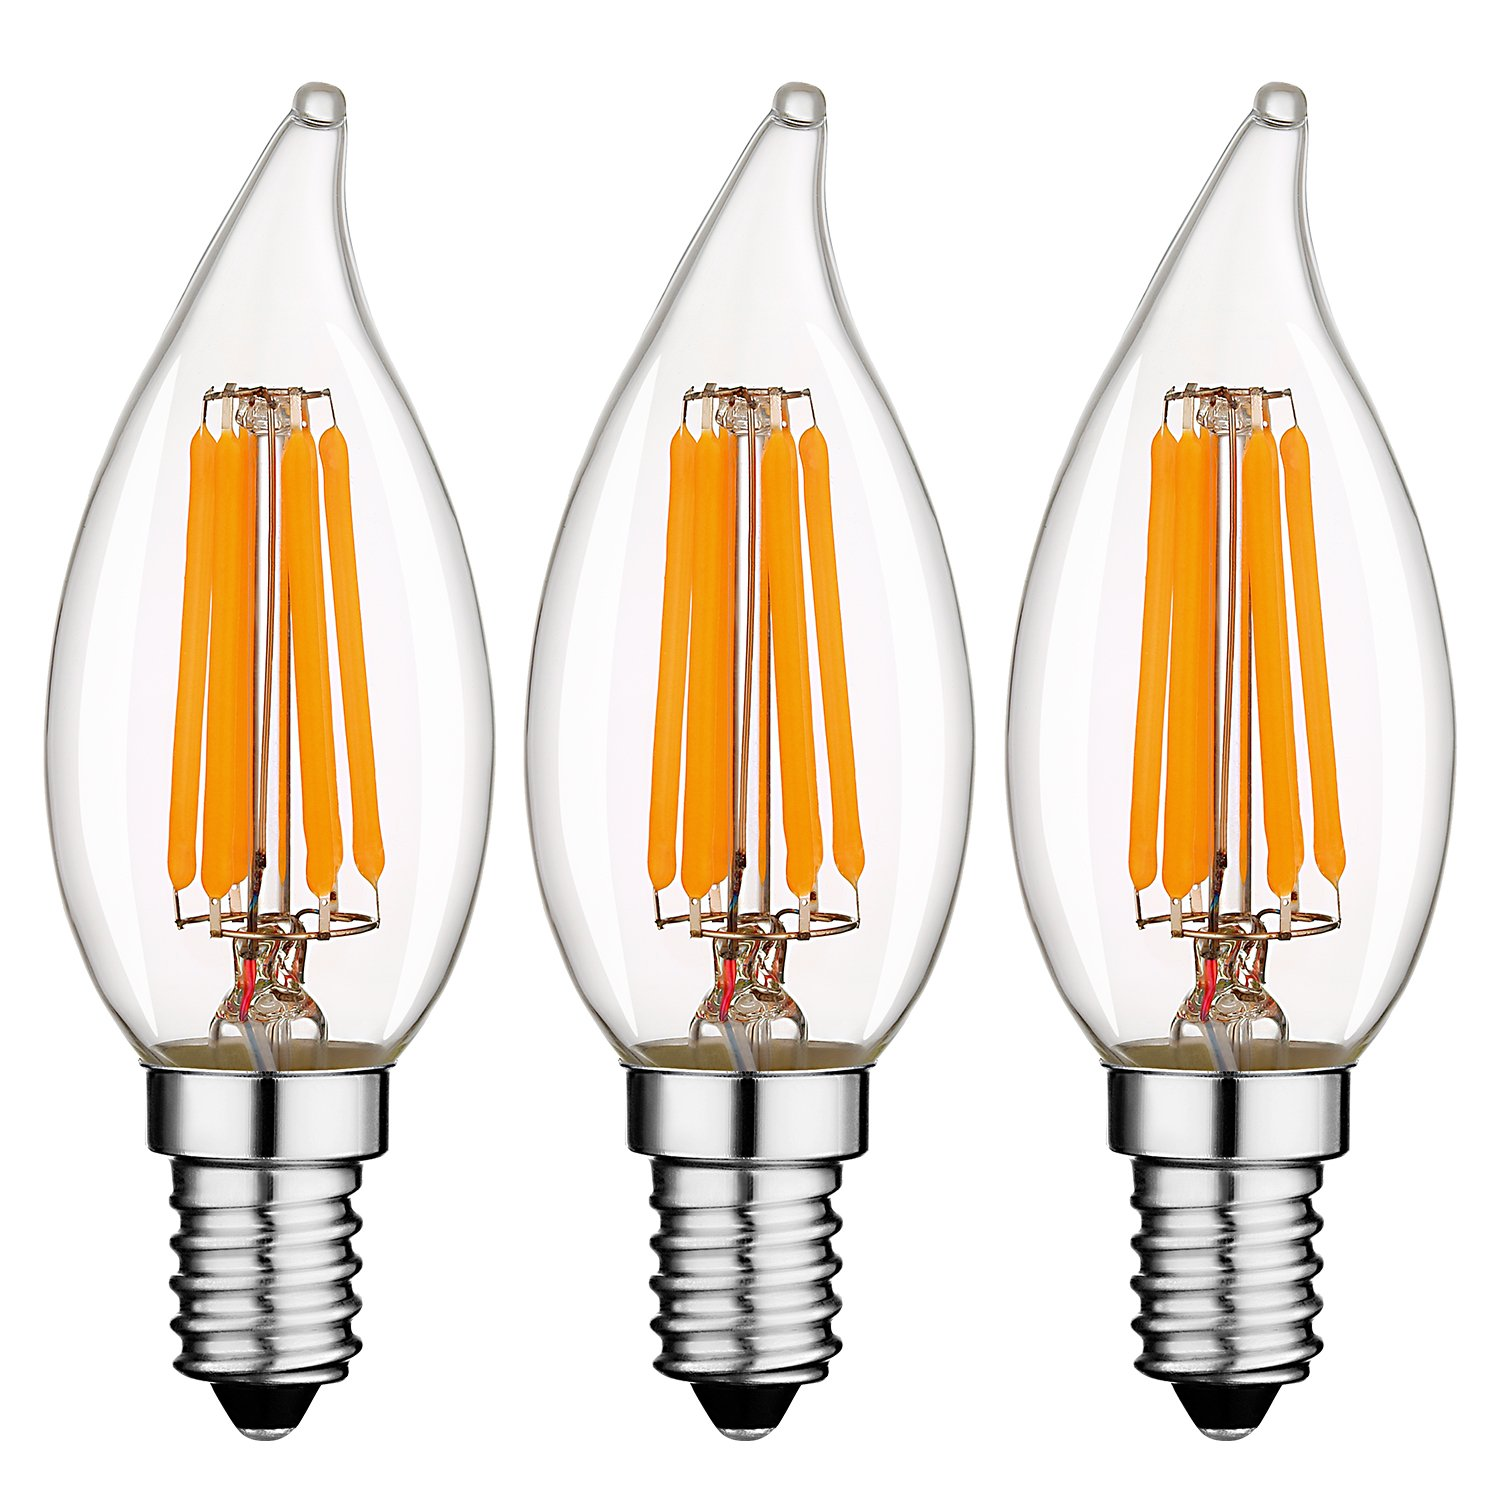 Cheap cfl chandelier bulbs find cfl chandelier bulbs deals on line get quotations keymit c32 6w led candelabra base bulbs deep dimmable e12 chandelier candle lights 2700k arubaitofo Images